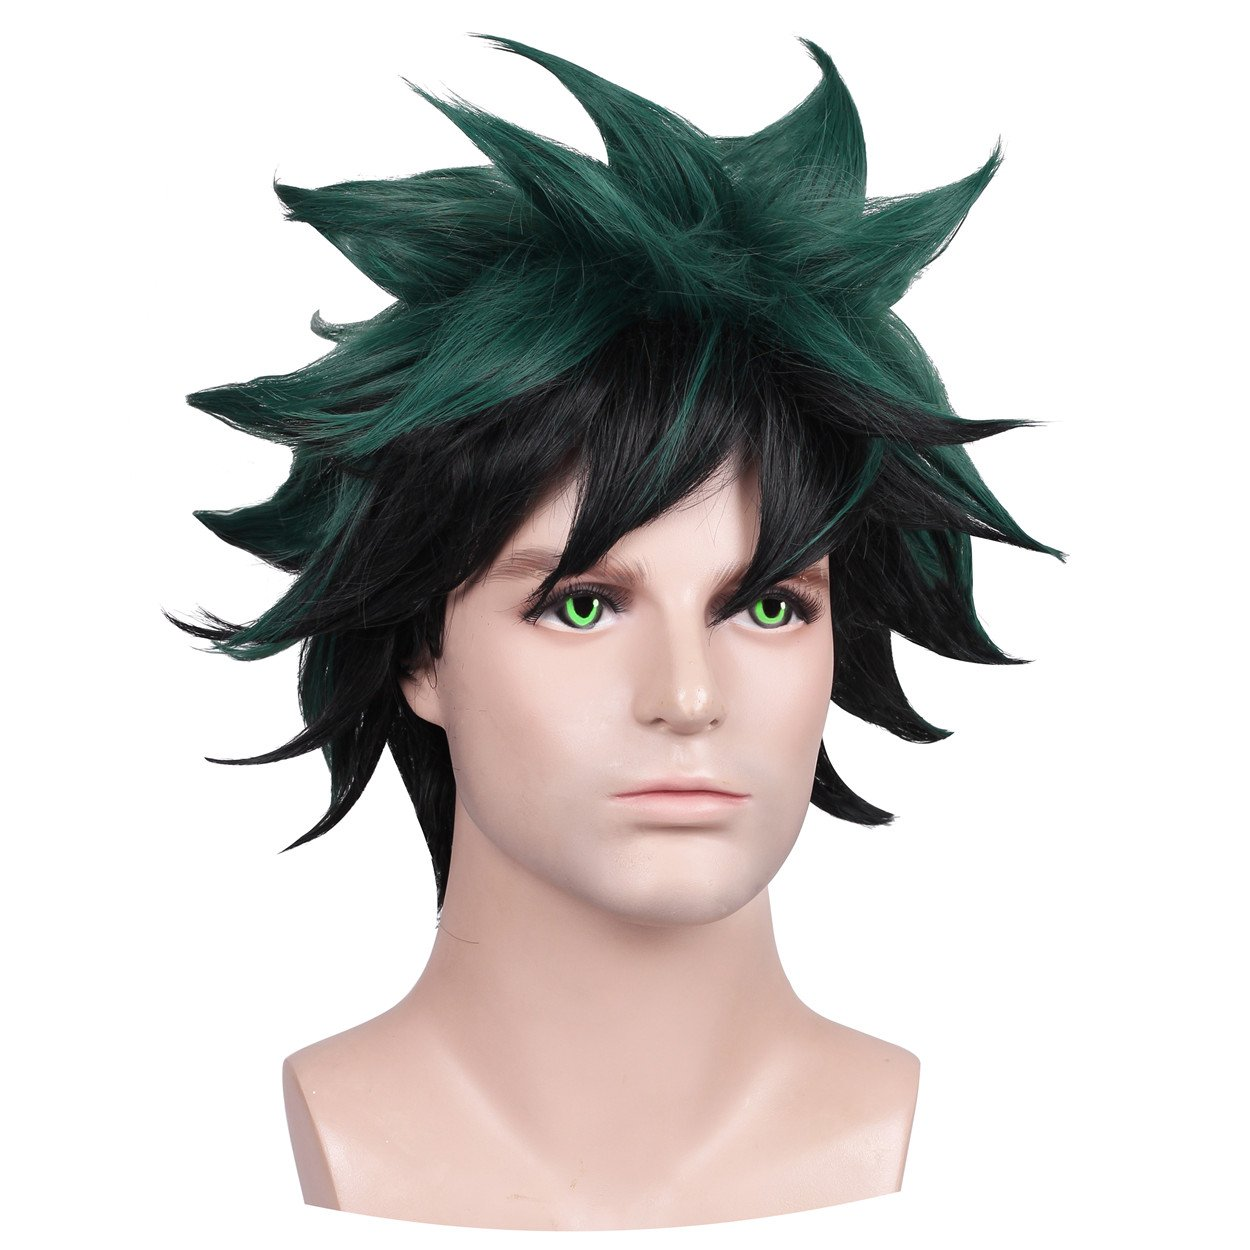 FantaLook Short Green with Black Cosplay Wig ManZo